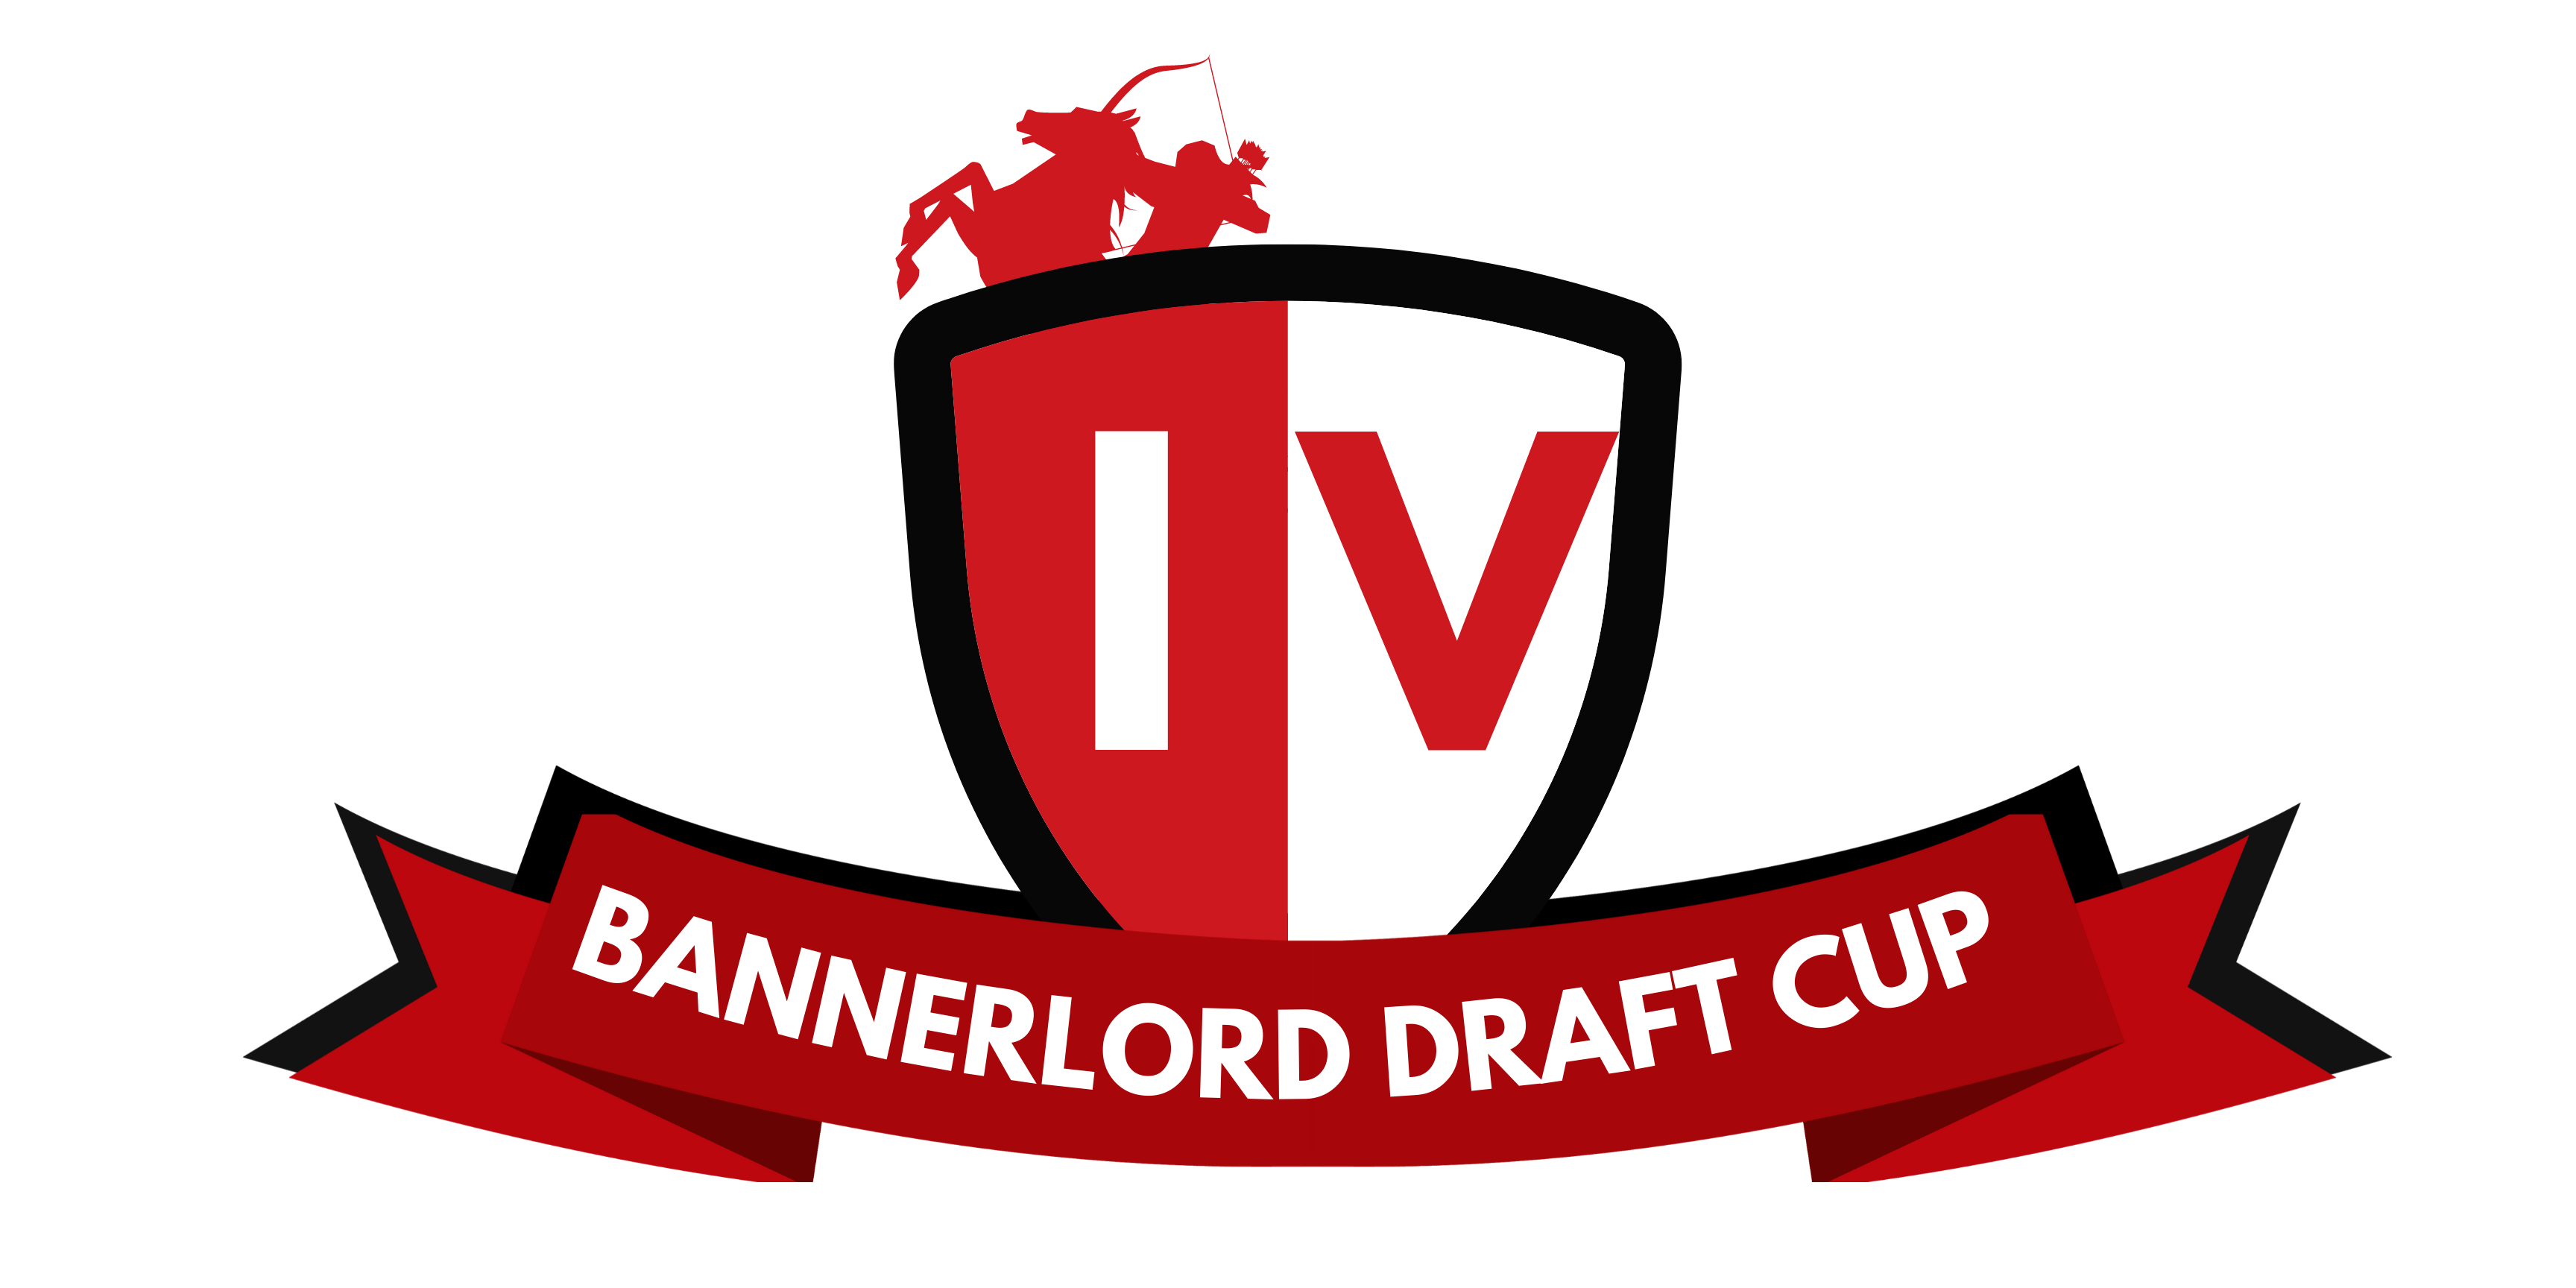 BANNERLORD_DRAFT_CUP_IV_5.png